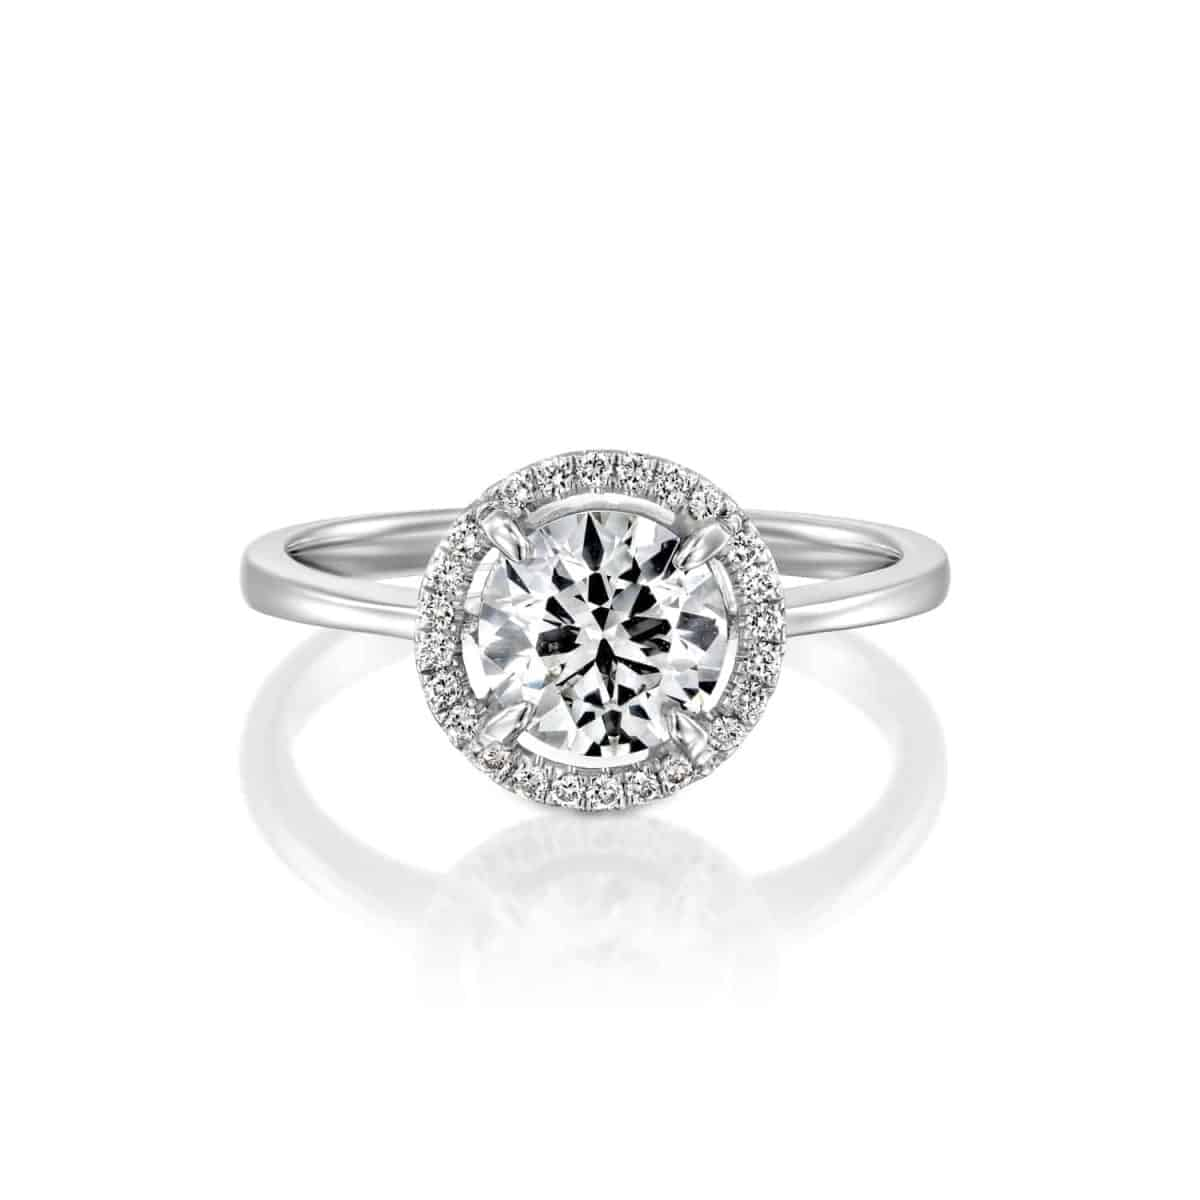 Lisa - White Gold Lab Grown Diamond Engagement Ring 1.01ct. - laying